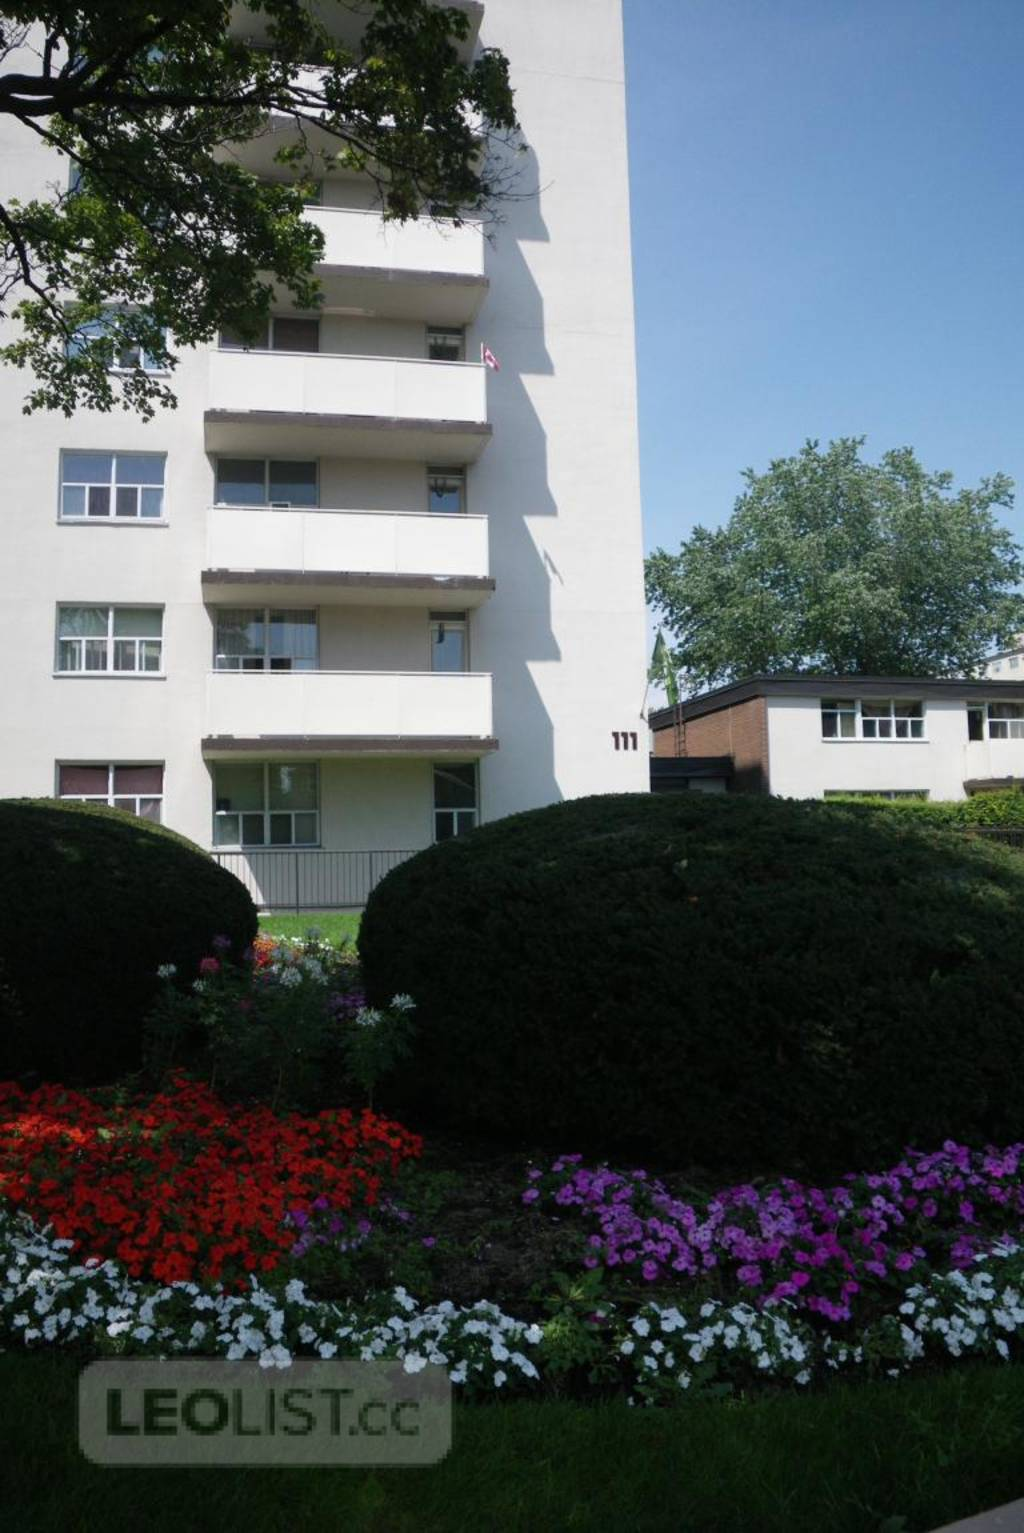 $1,450, 3br, Toronto East Apartment For Rent - 3 Bedrooms - $1,450.00